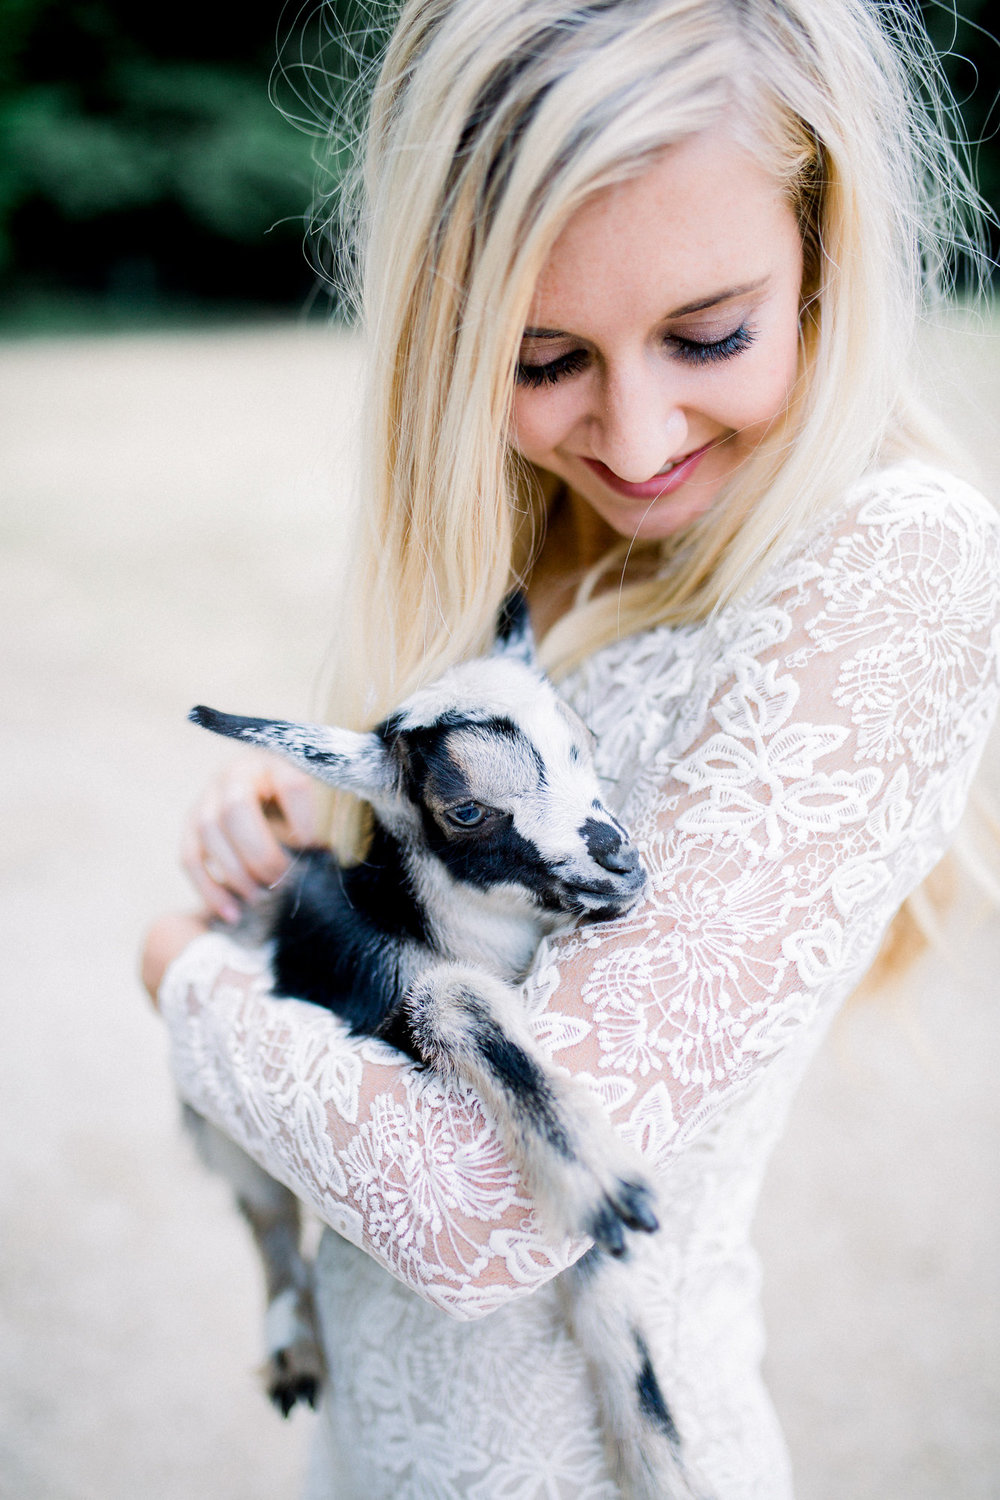 bride in long sleeve lace bridal dress holding baby goat kim baker beauty san jose caifornia makeup artist